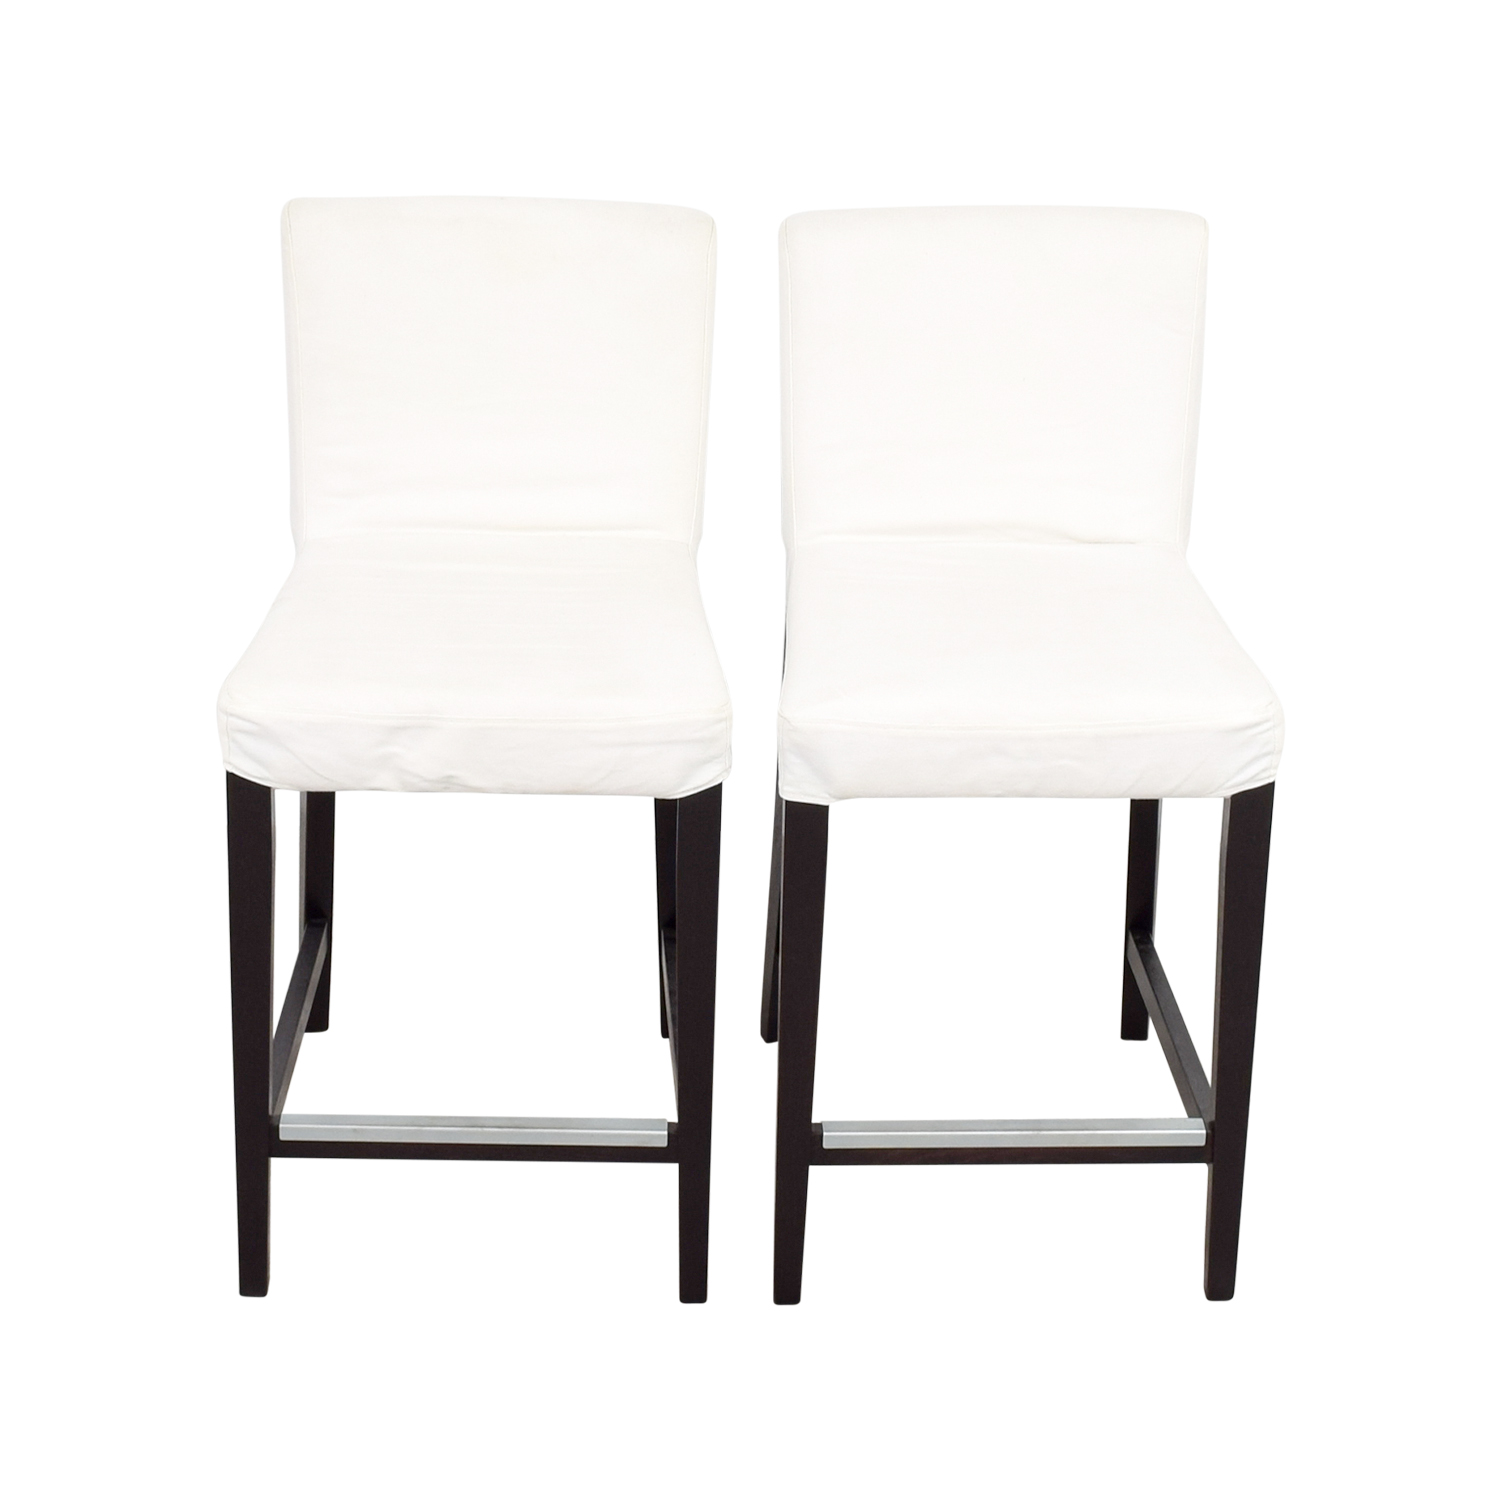 88 off ikea ikea henriksdal white covered bar stools chairs. Black Bedroom Furniture Sets. Home Design Ideas